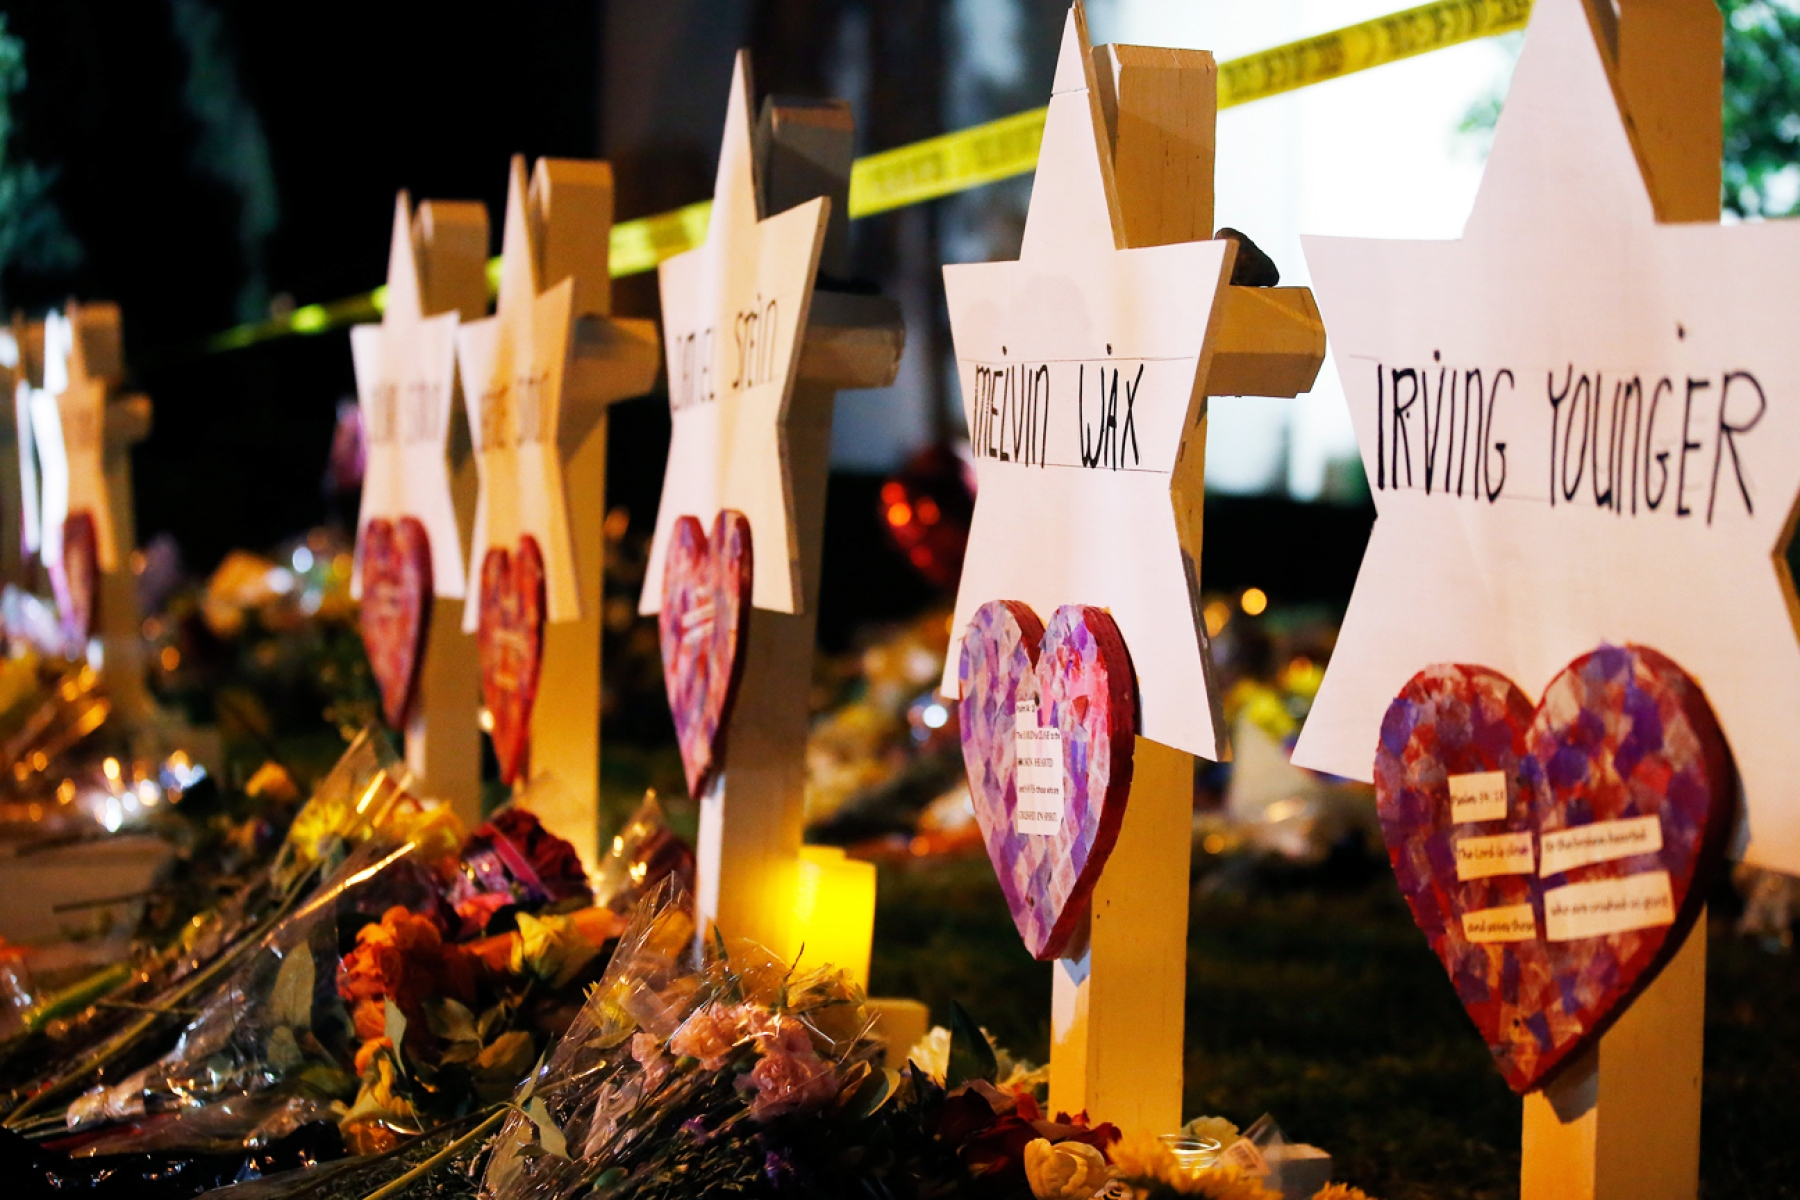 The Star of David memorials are lined with flowers at the Tree of Life synagogue two days after a mass shooting in Pittsburgh